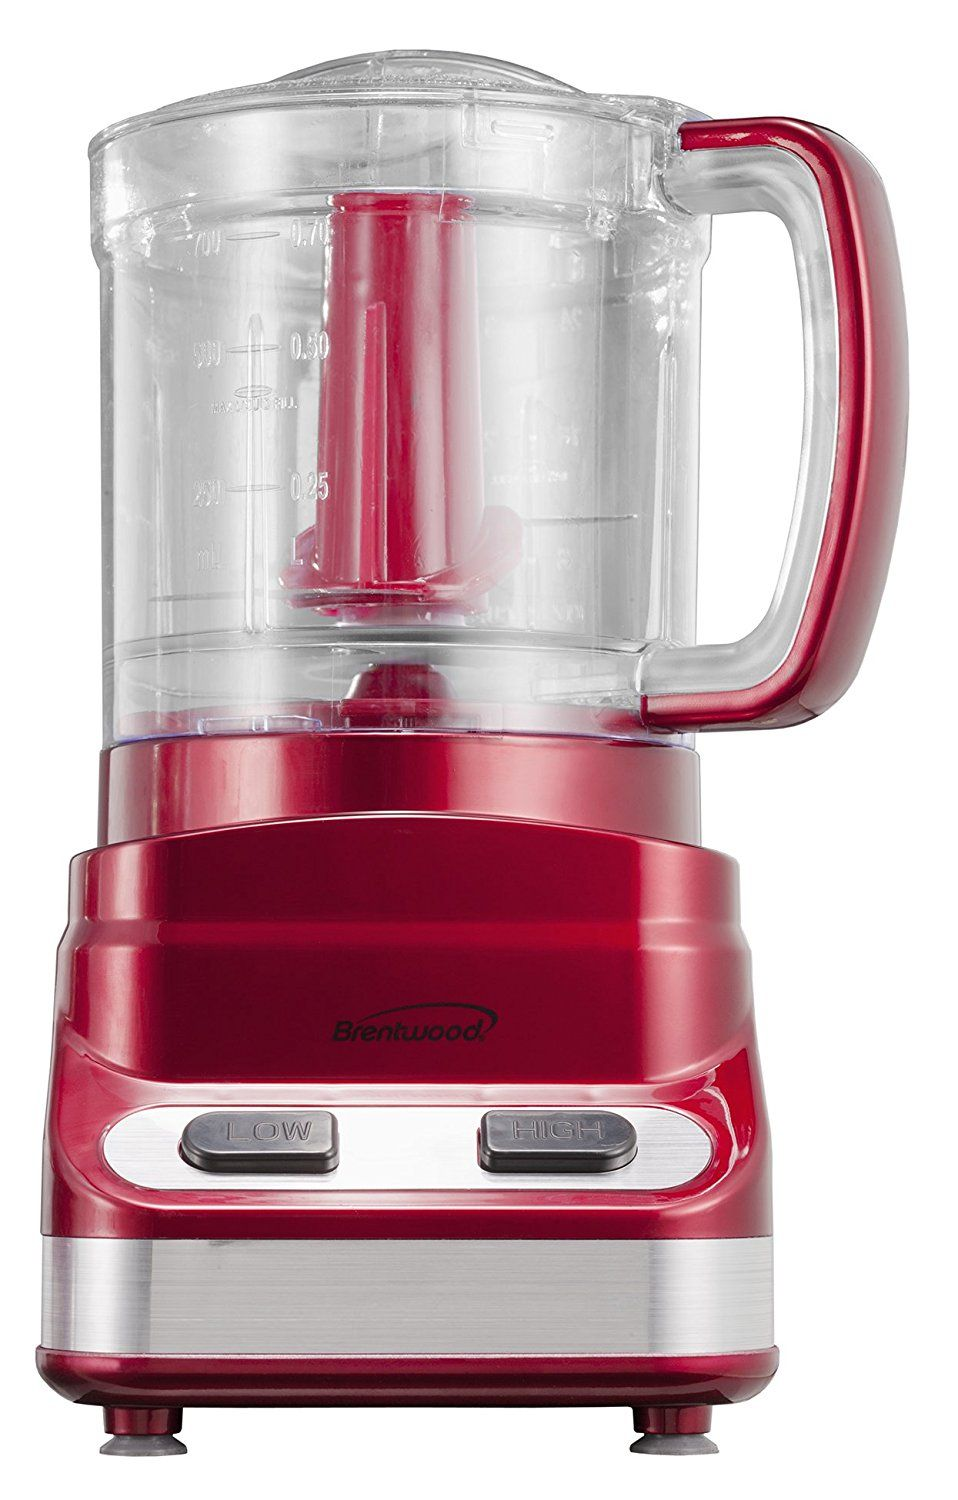 Brentwood FP548 3Cup Tone Color Food Processor, Red